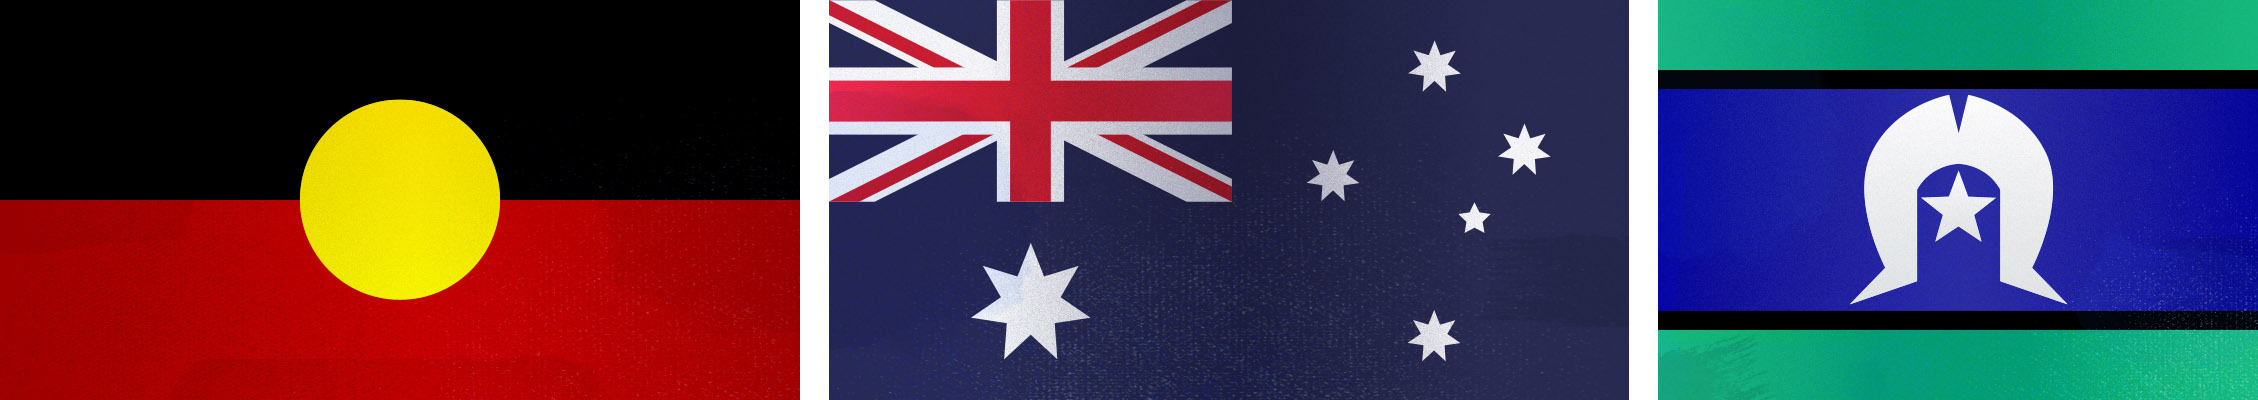 Aboriginal, Australian, and Torres Strait Islander flags